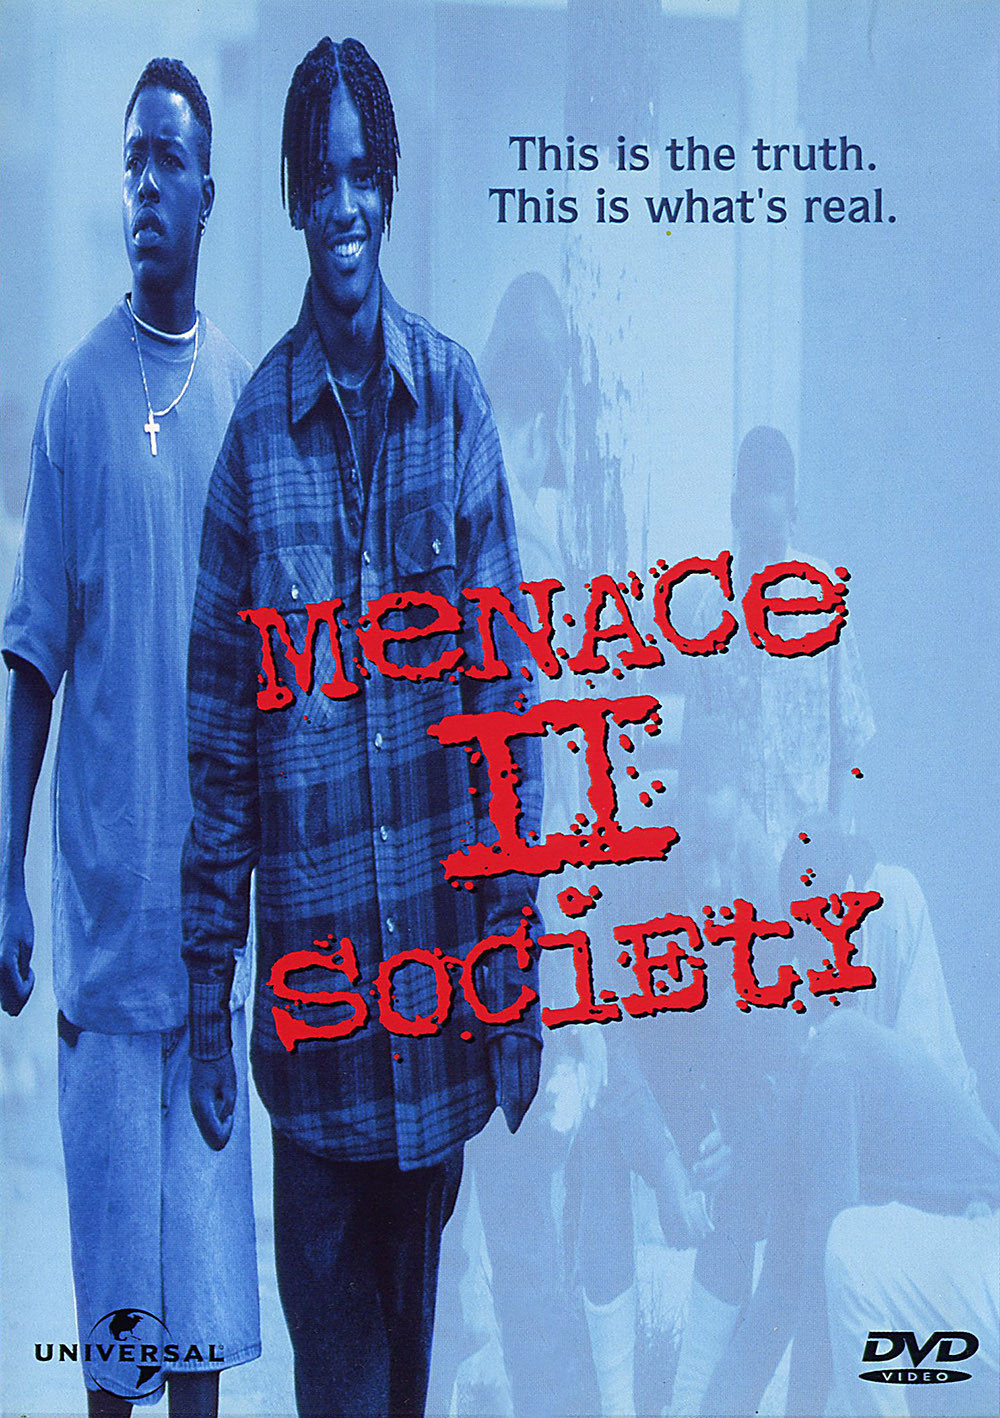 Menace 2 Society Quotes. QuotesGram